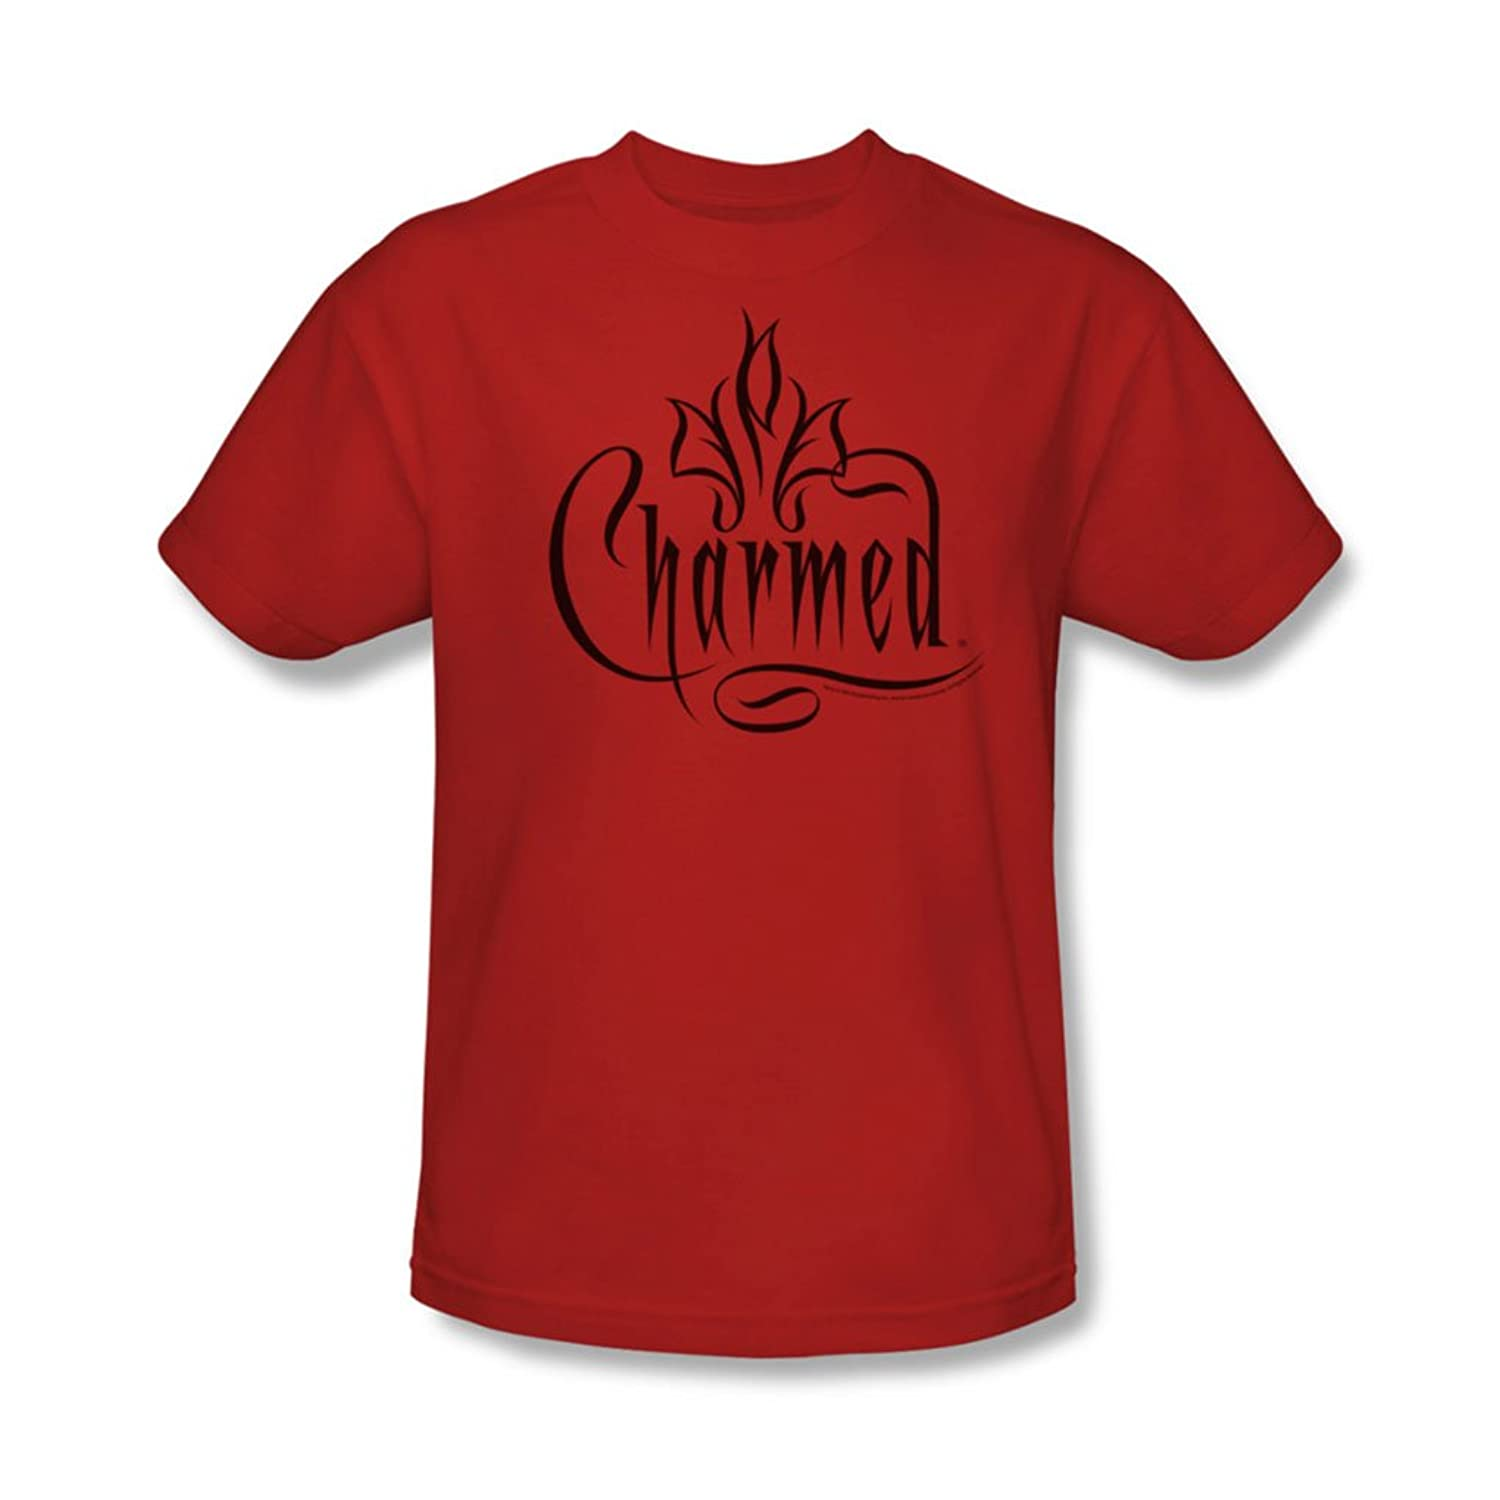 Cbs - Charmed / Charmed Logo Adult T-Shirt In Red